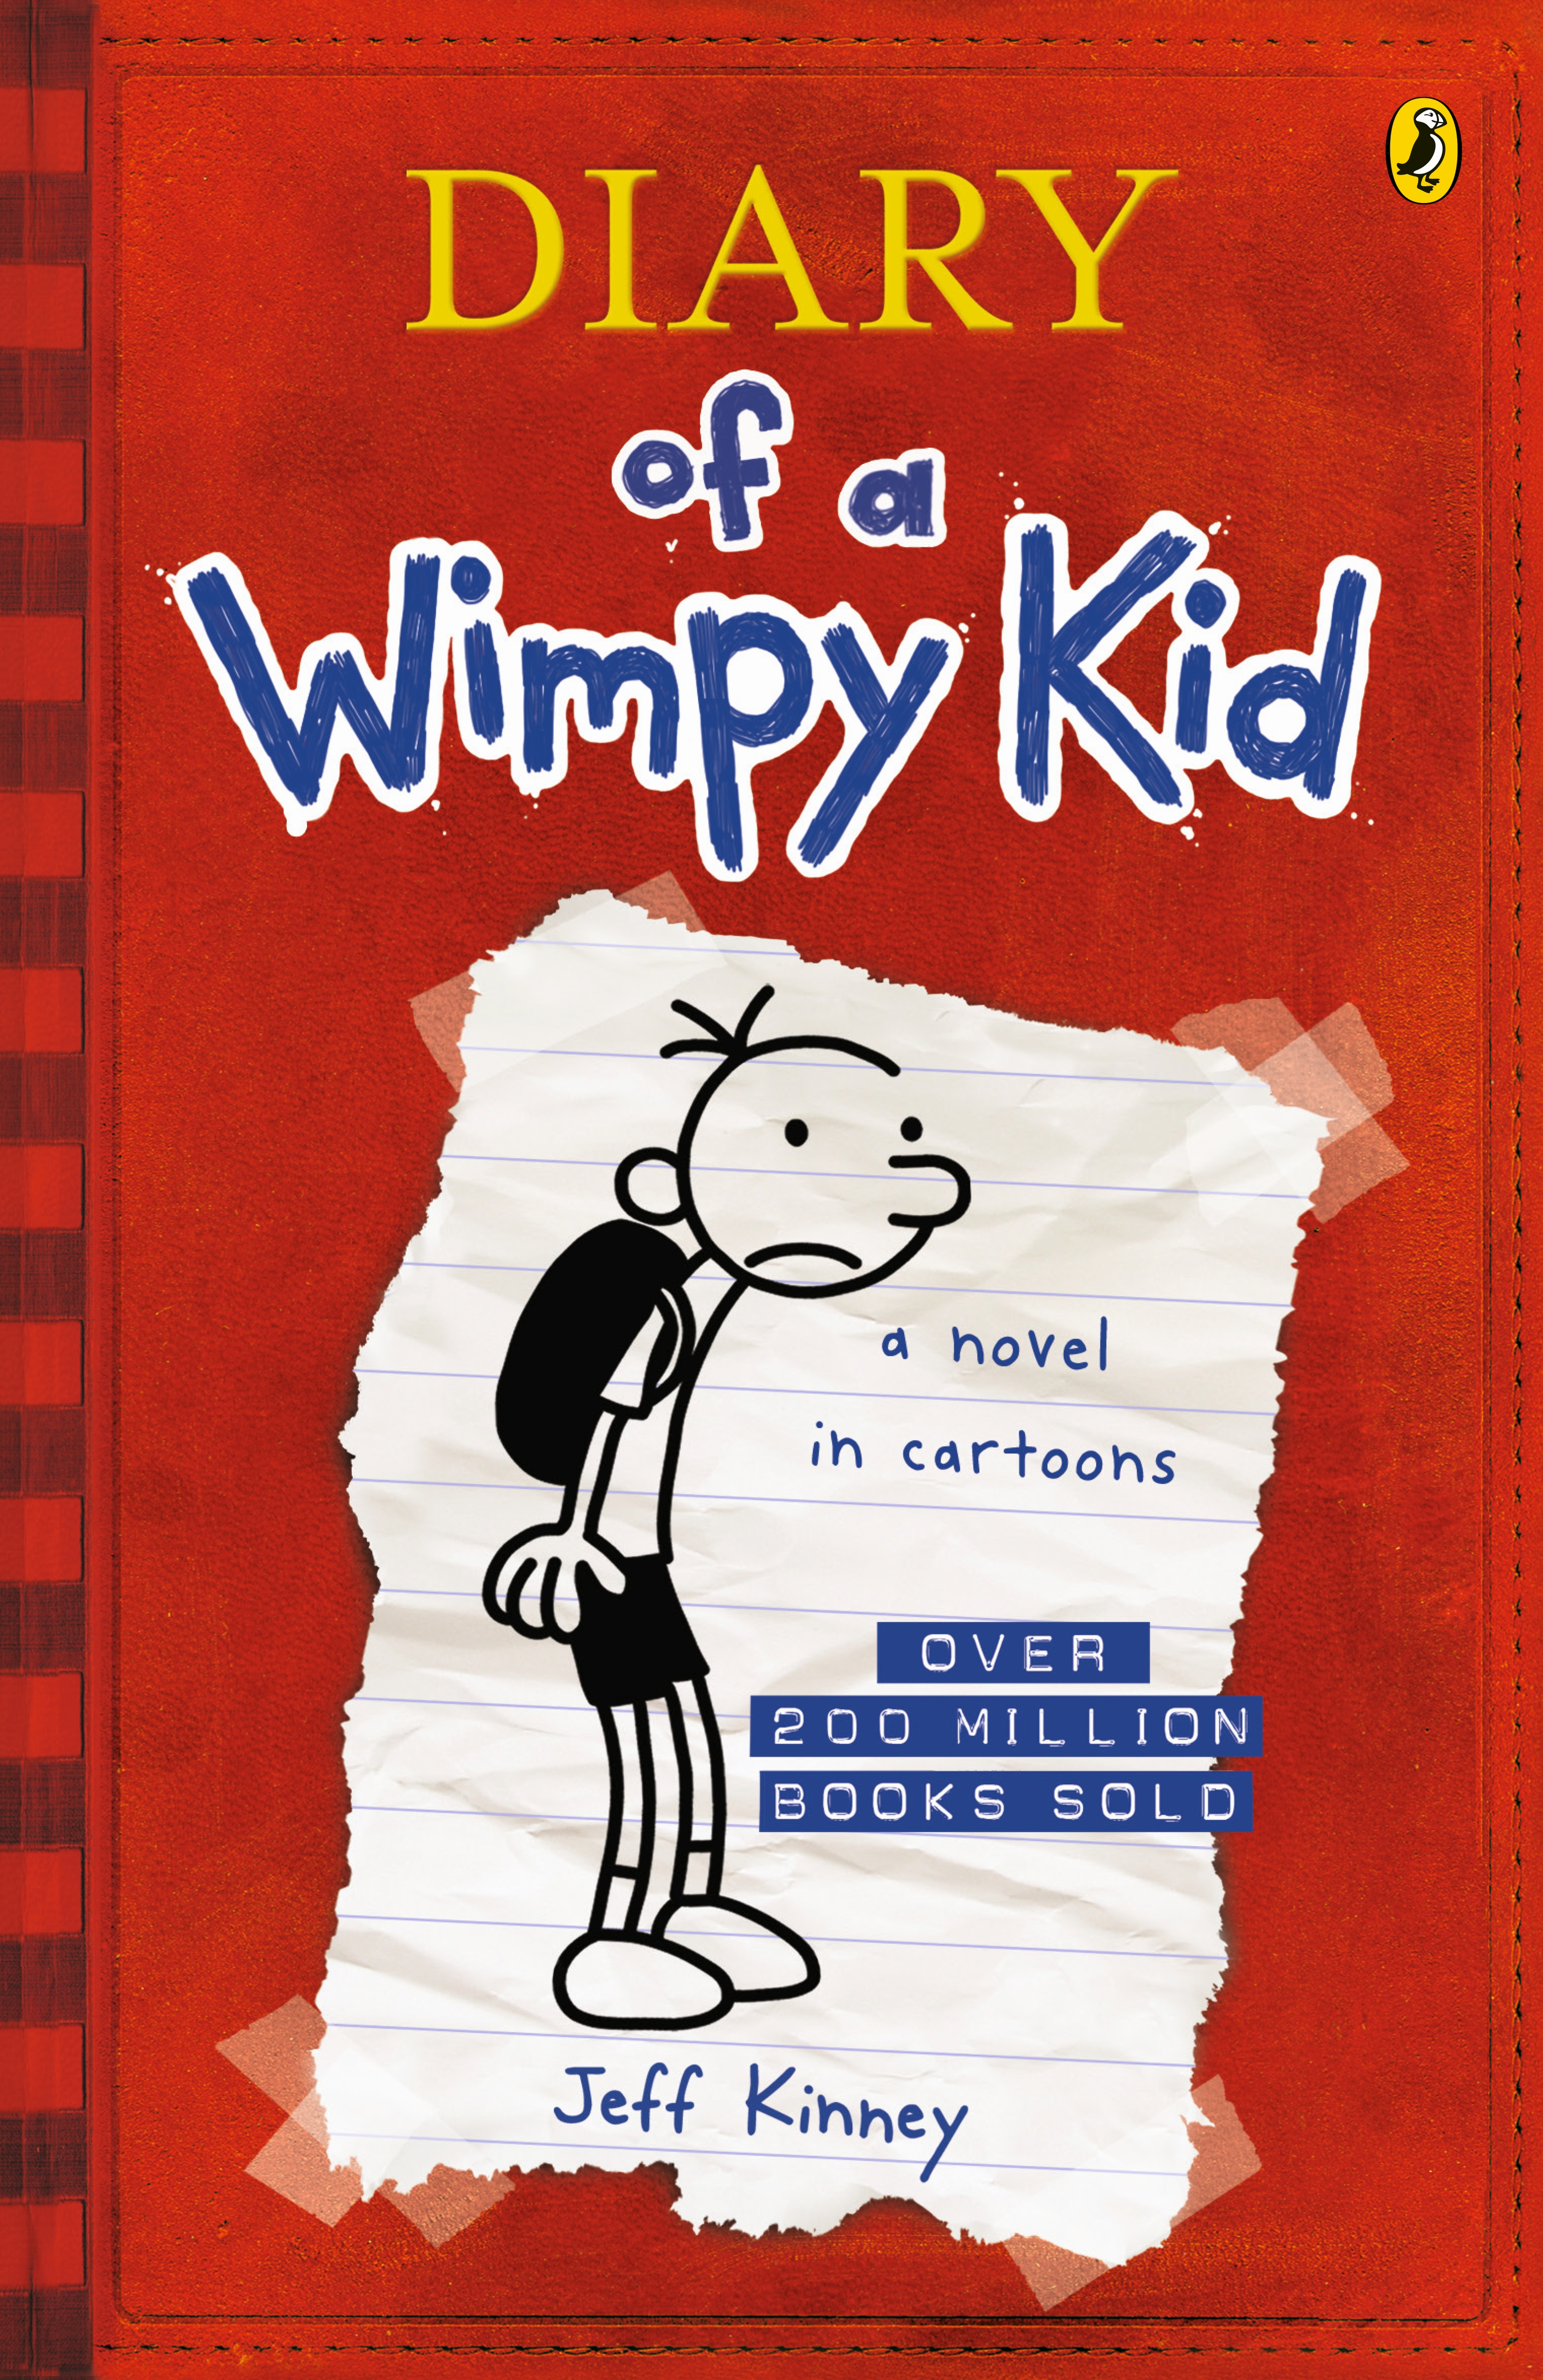 Diary of a wimpy kid bk1 by jeff kinney penguin books australia hi res cover diary of a wimpy kid solutioingenieria Images